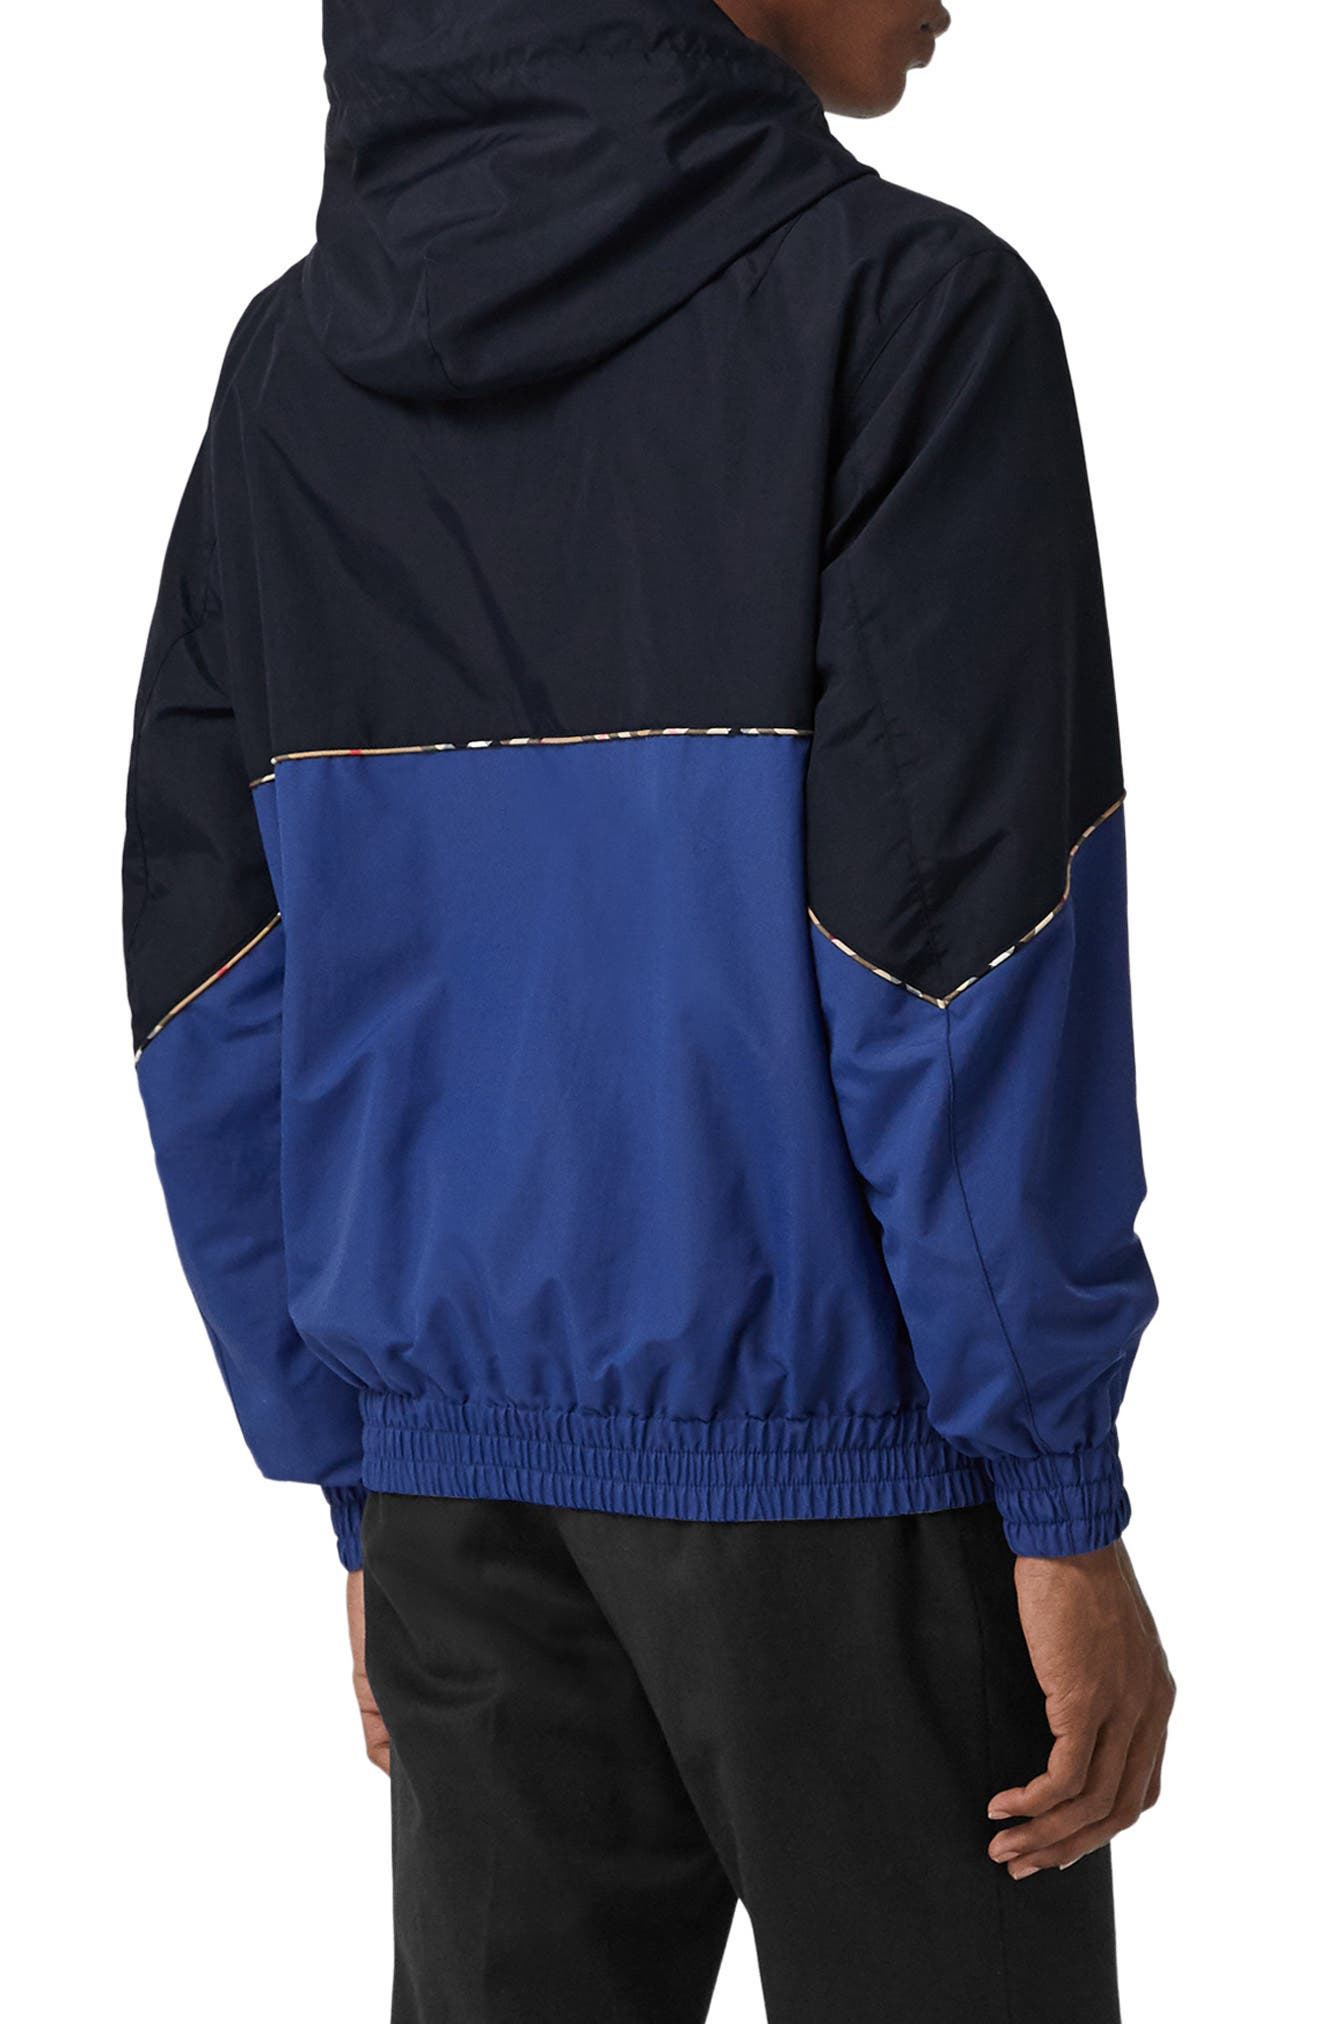 Elsworth Hooded Zip Jacket,                             Alternate thumbnail 3, color,                             NAVY